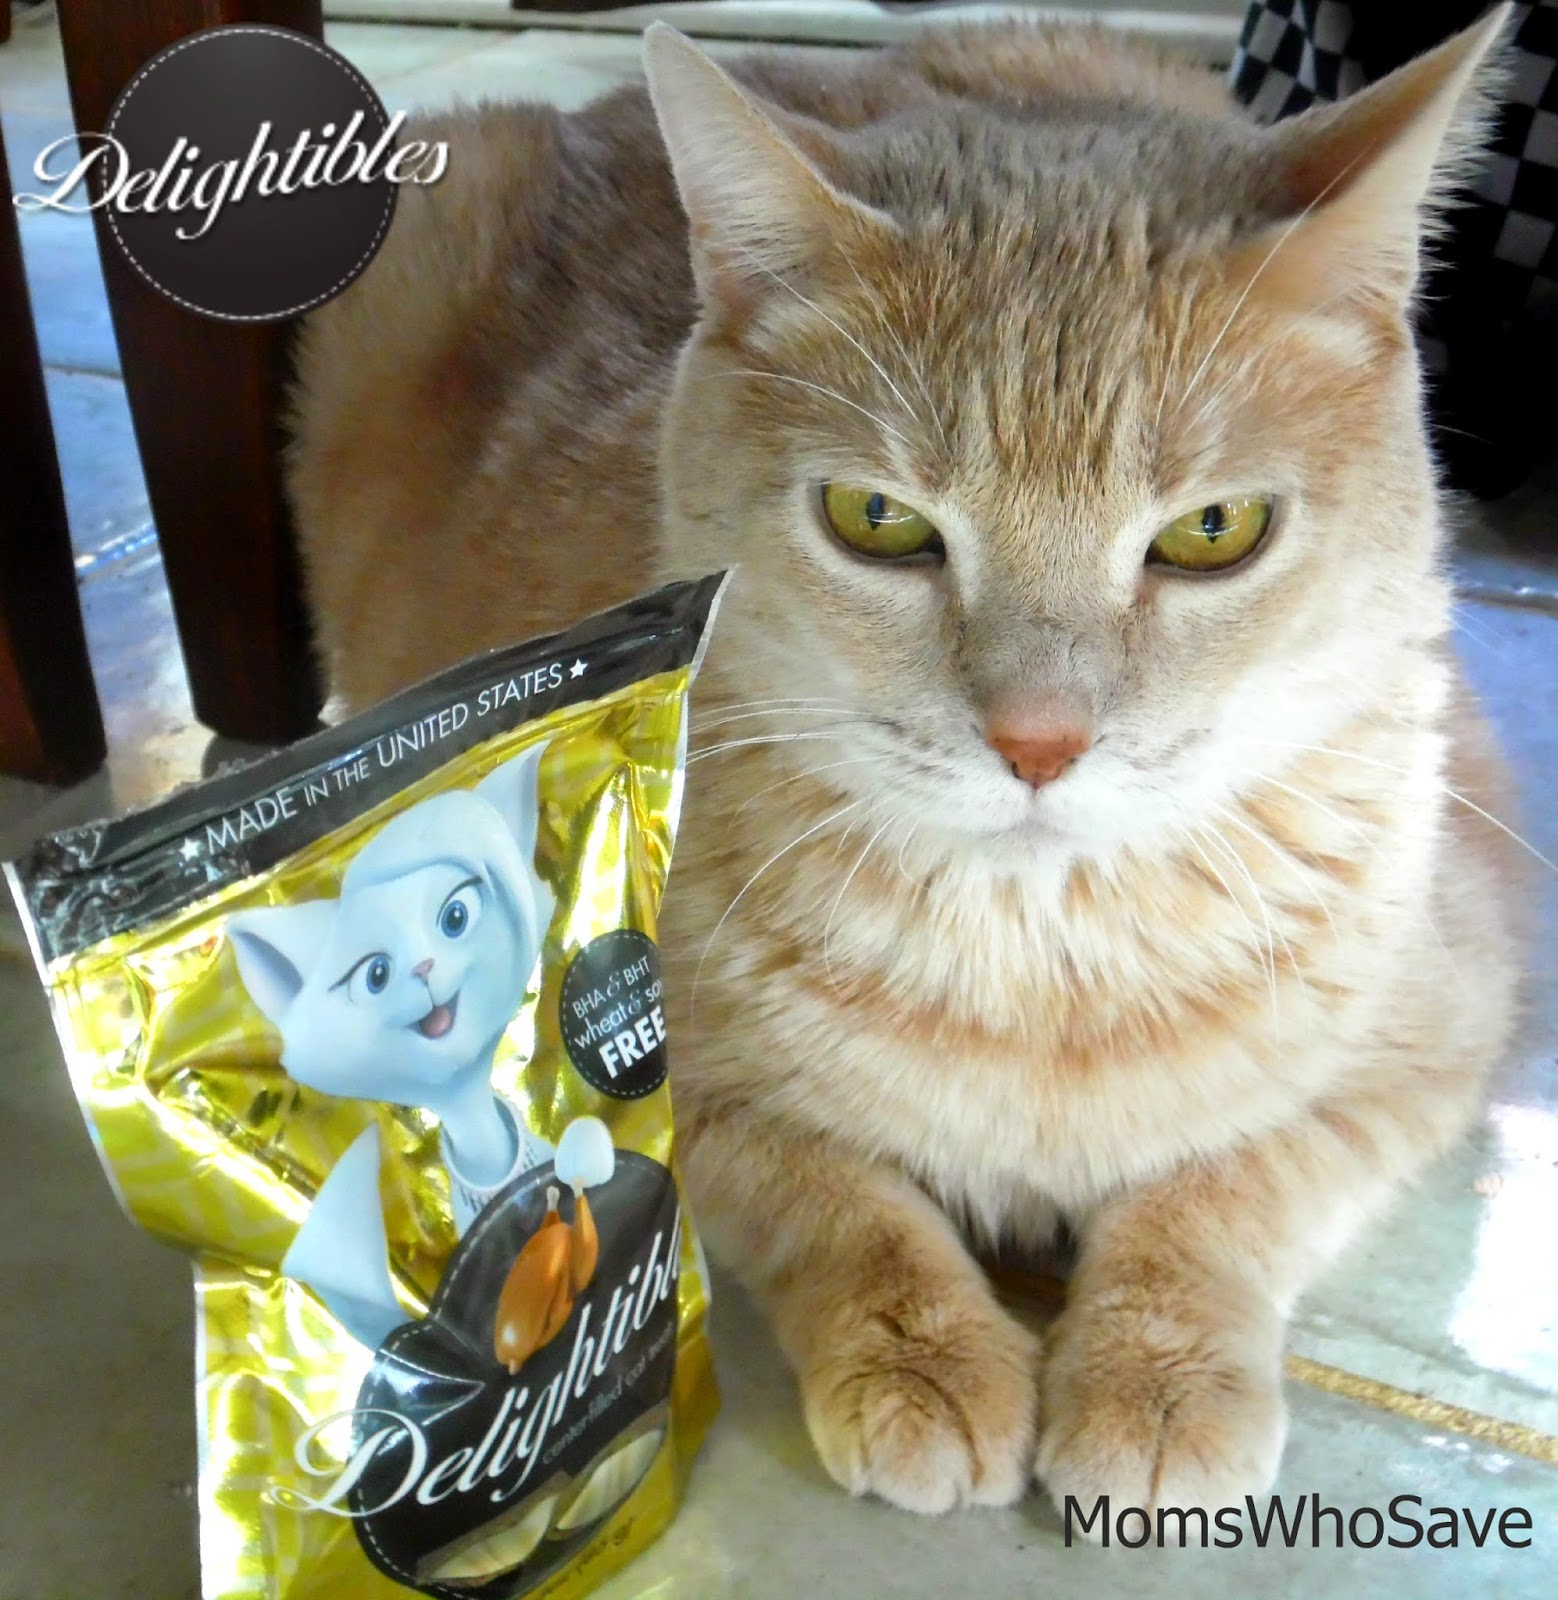 Delightibles Cat Treats (Made in the USA) Review & a Giveaway!